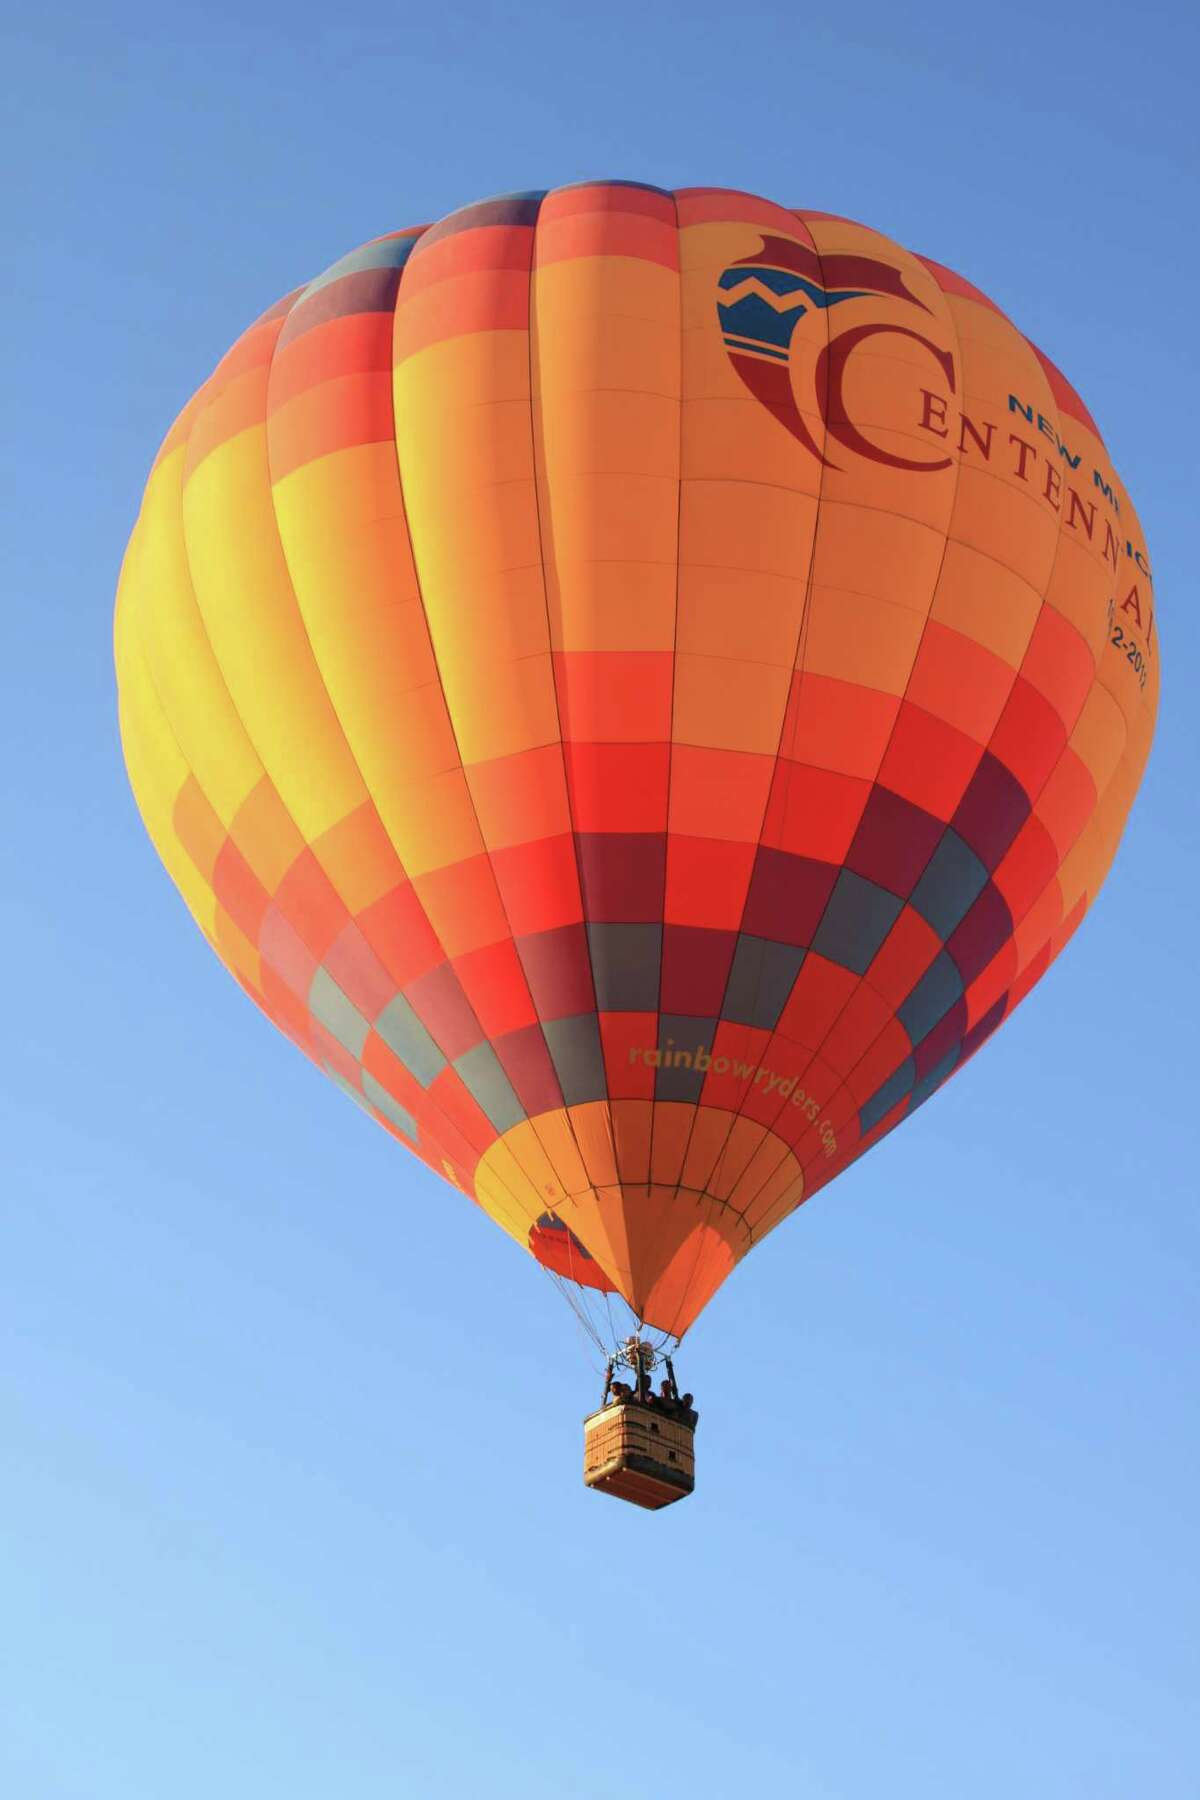 Almost every dawn of the year, hot air balloons rise like jewels in the sky over Albuquerque, New Mexico.